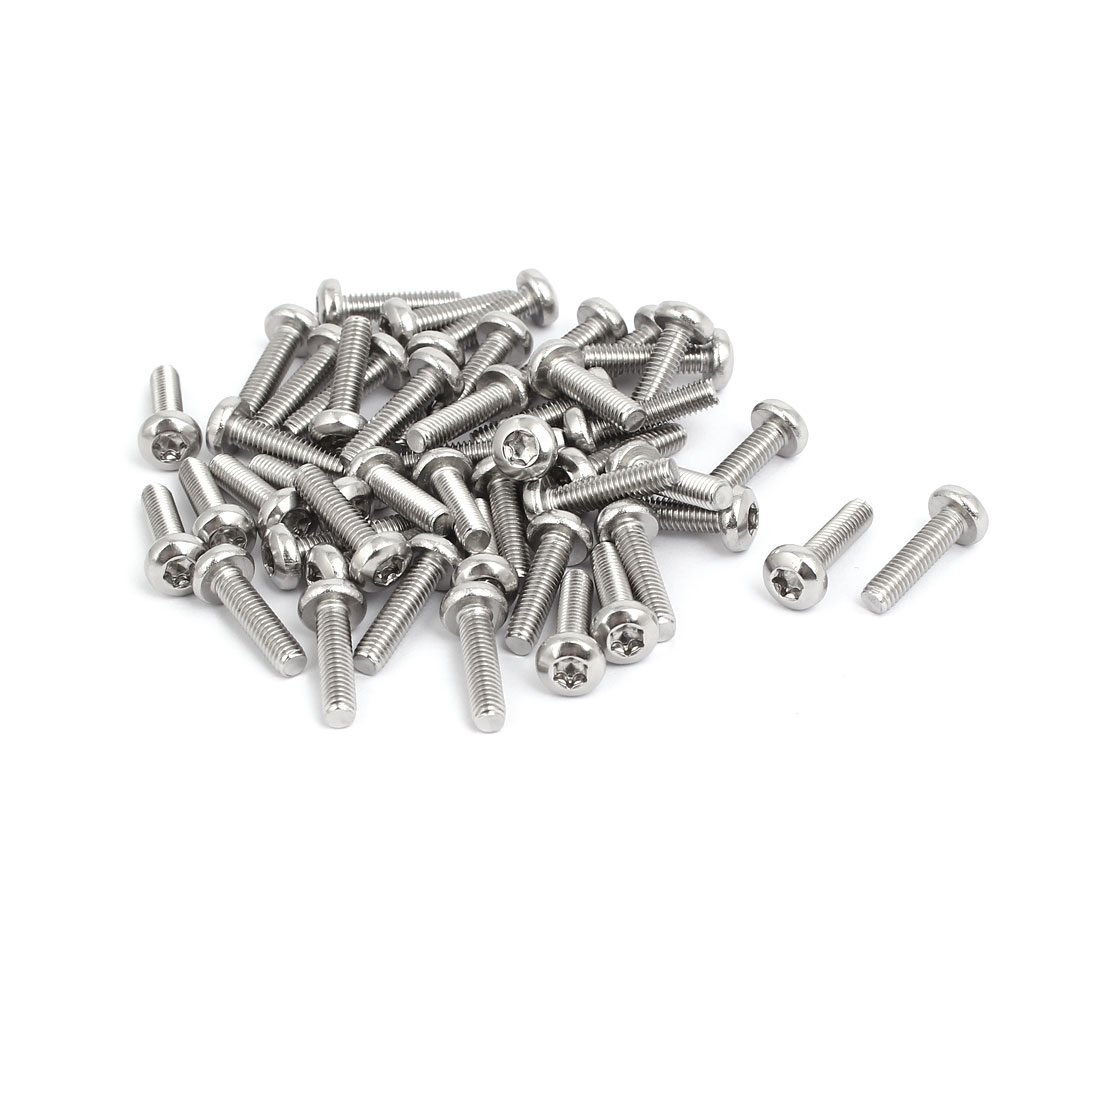 M4x16mm 304 Stainless Steel Button Head Torx Screws Bolts T20 Drive 50pcs